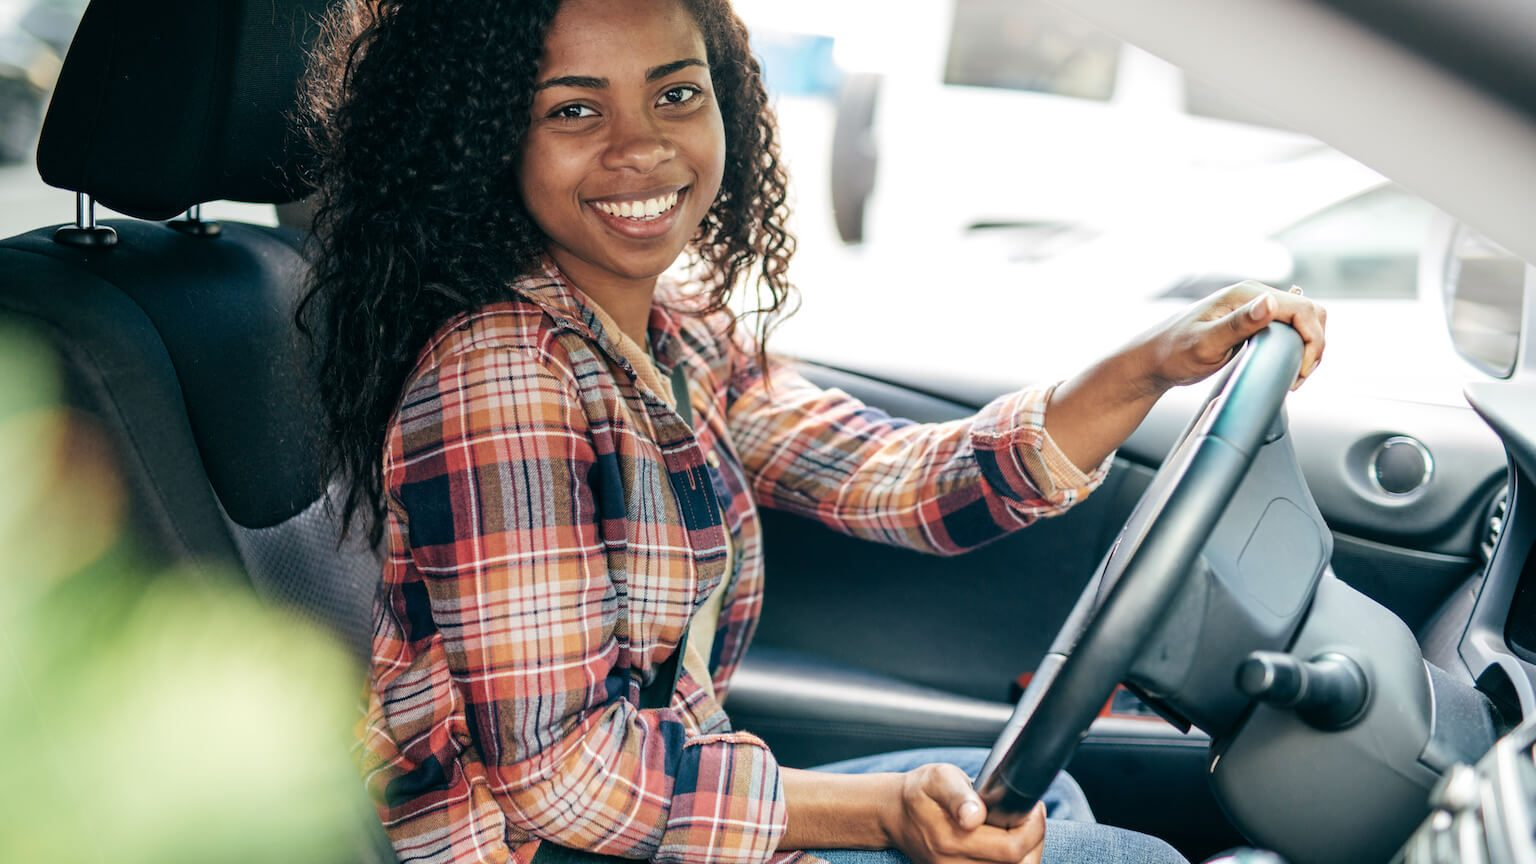 woman in chequered shirt smiling whilst driving